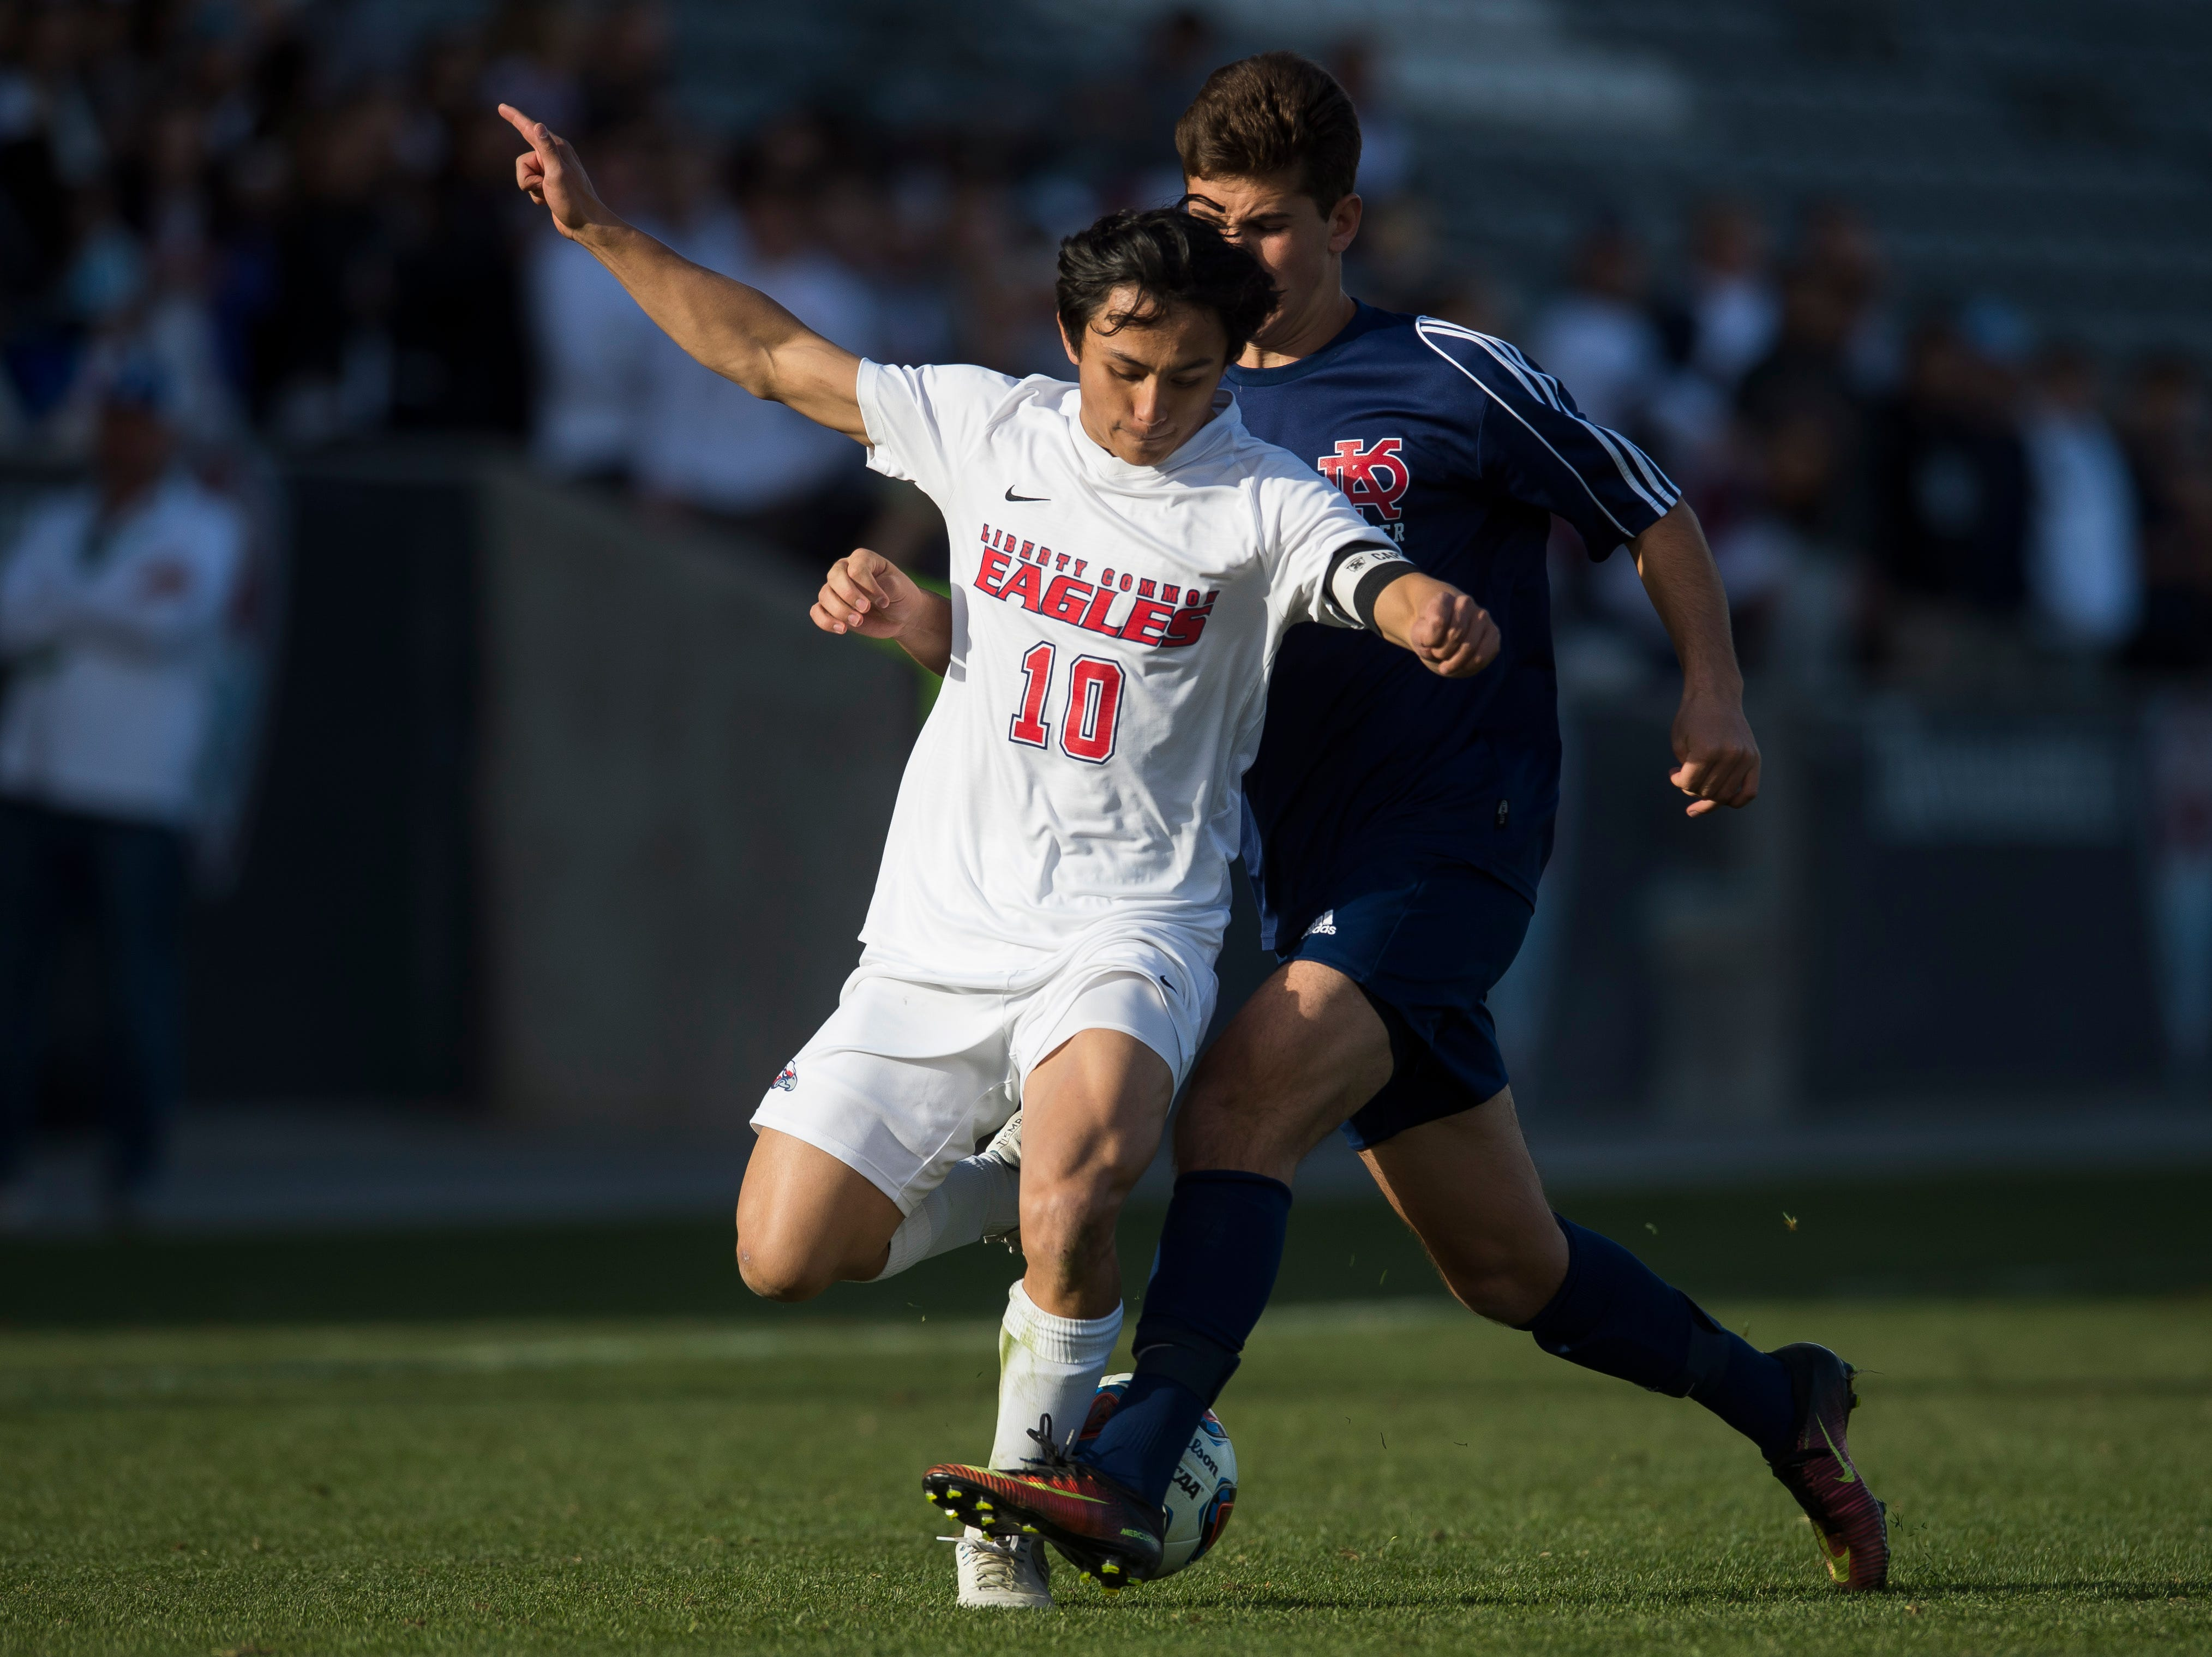 Liberty Common senior midfielder Michael Yeh (10) gets tripped up by Kent Denver sophomore Davis Evans (23) during the state 3A championship game on Saturday, Nov. 10, 2018, at Dick's Sporting Goods park in Commerce City, Colo.